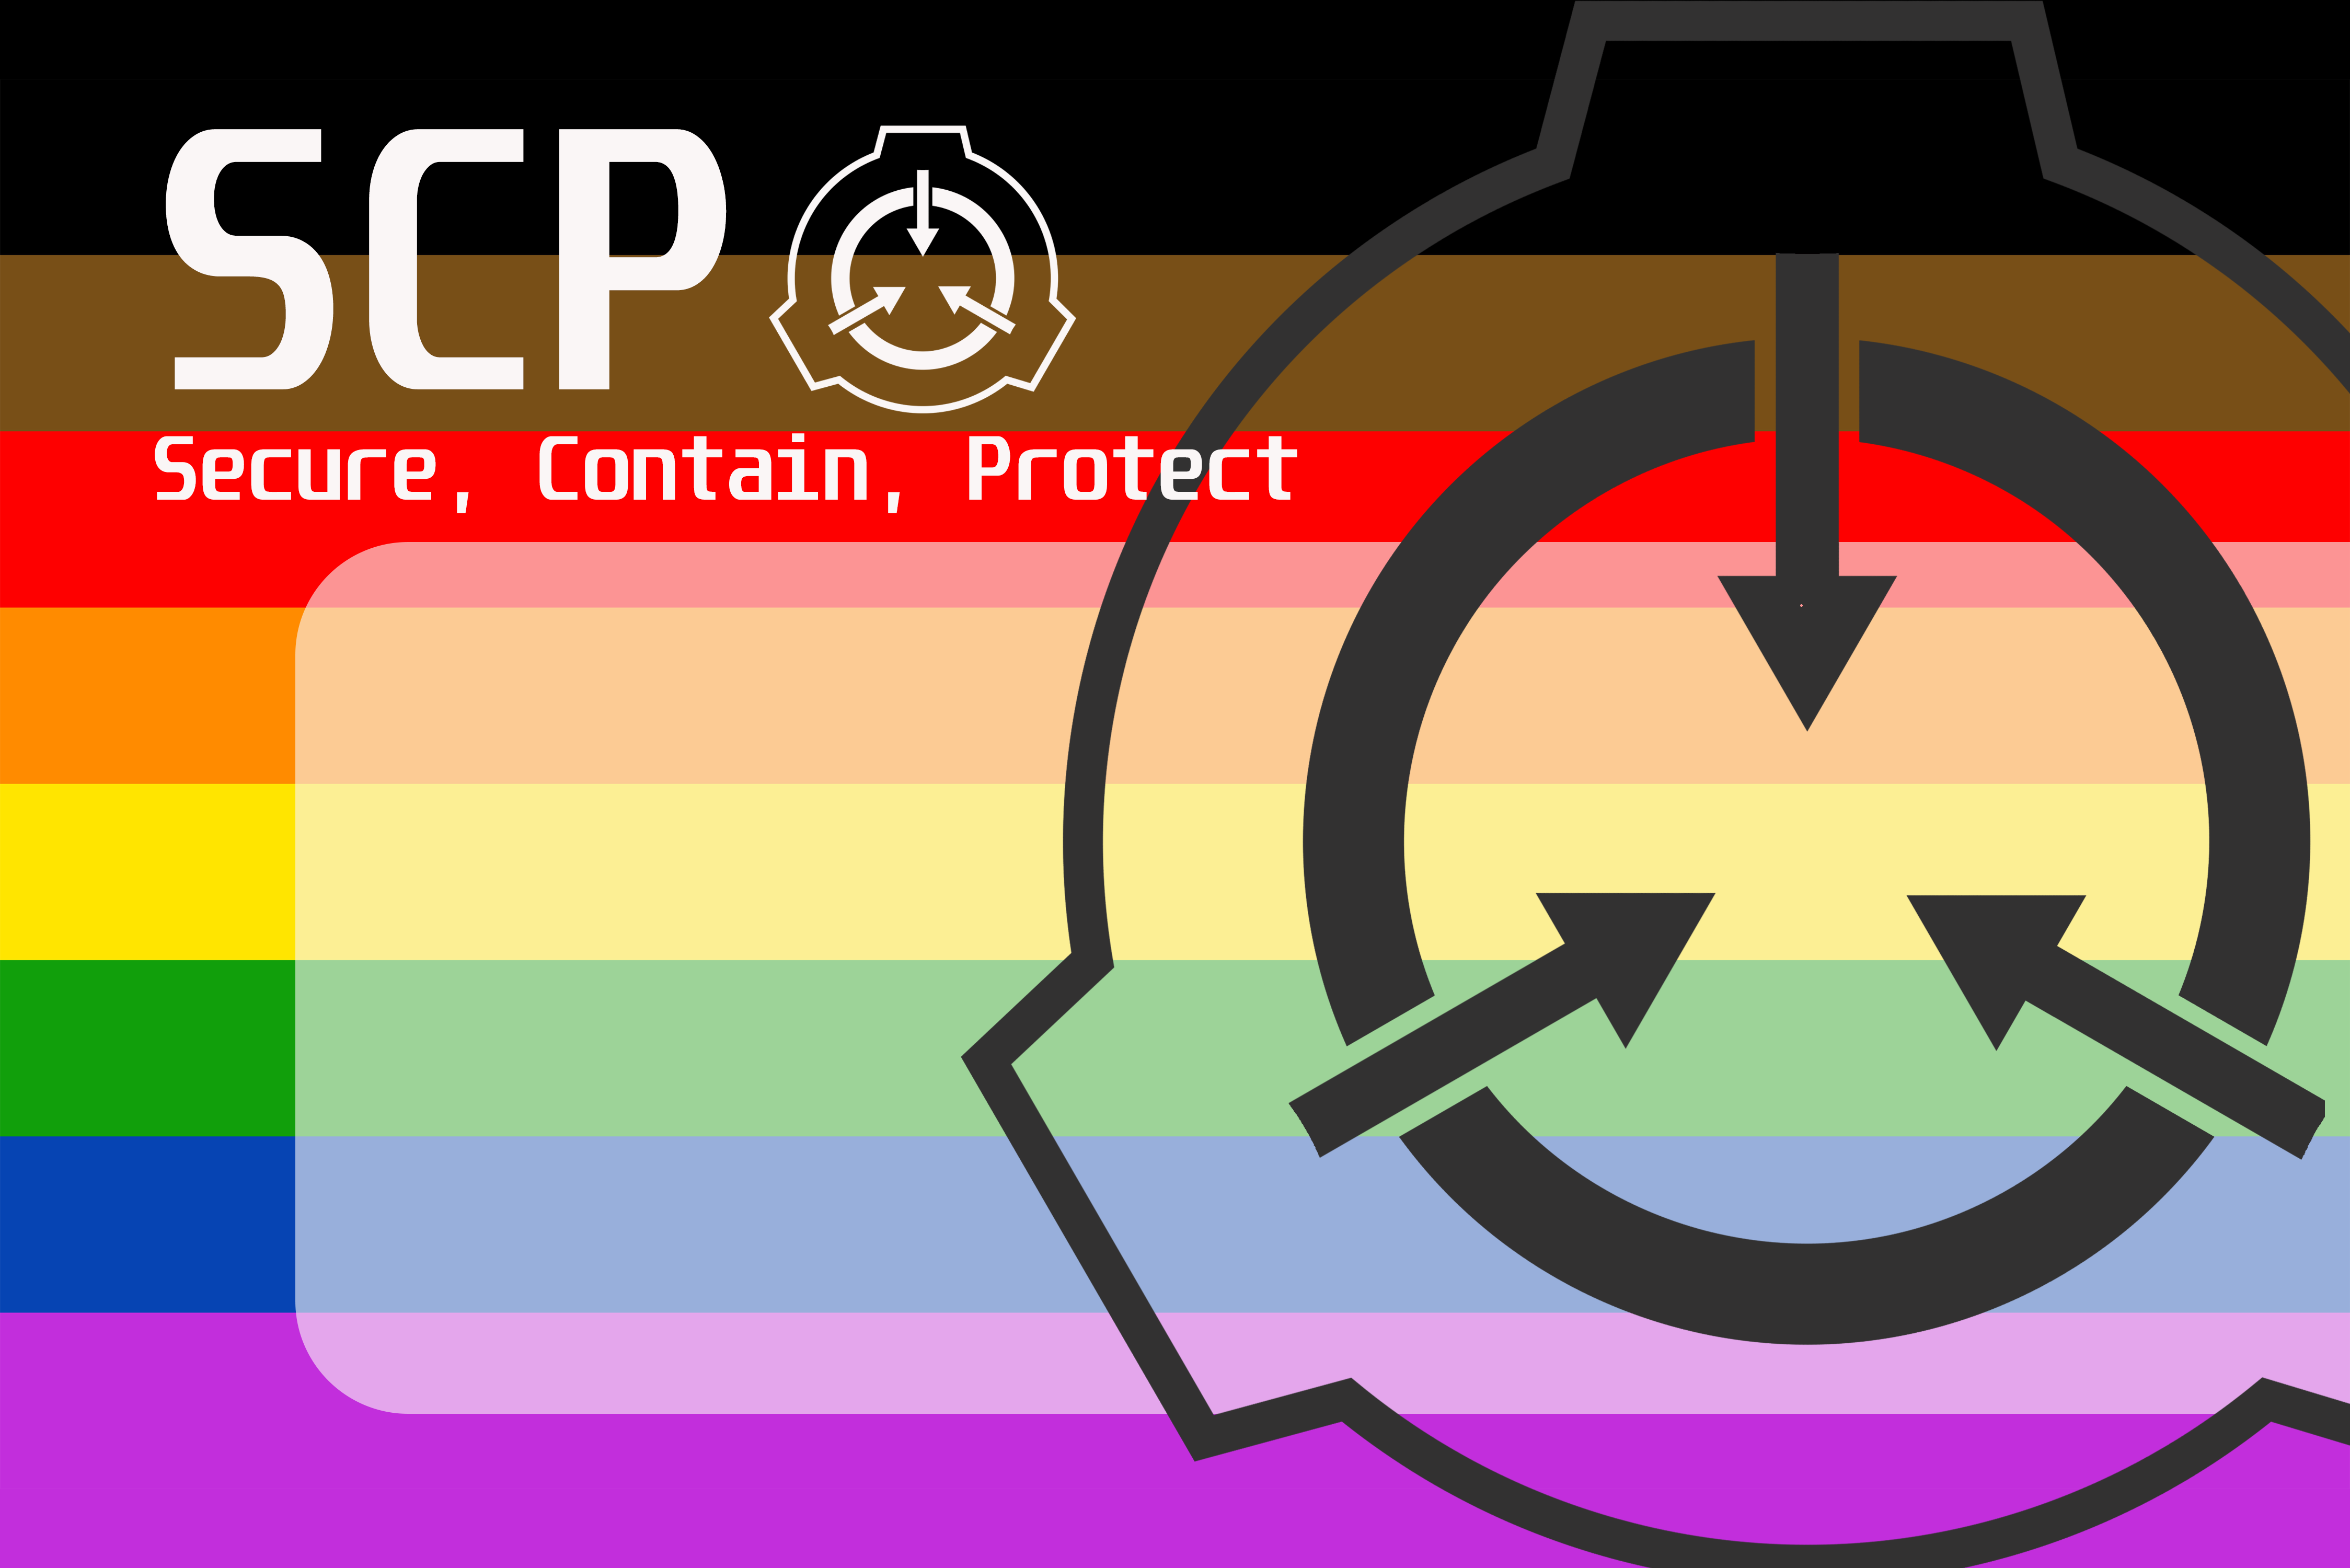 SCP-Ccard-Rainbow-02.png